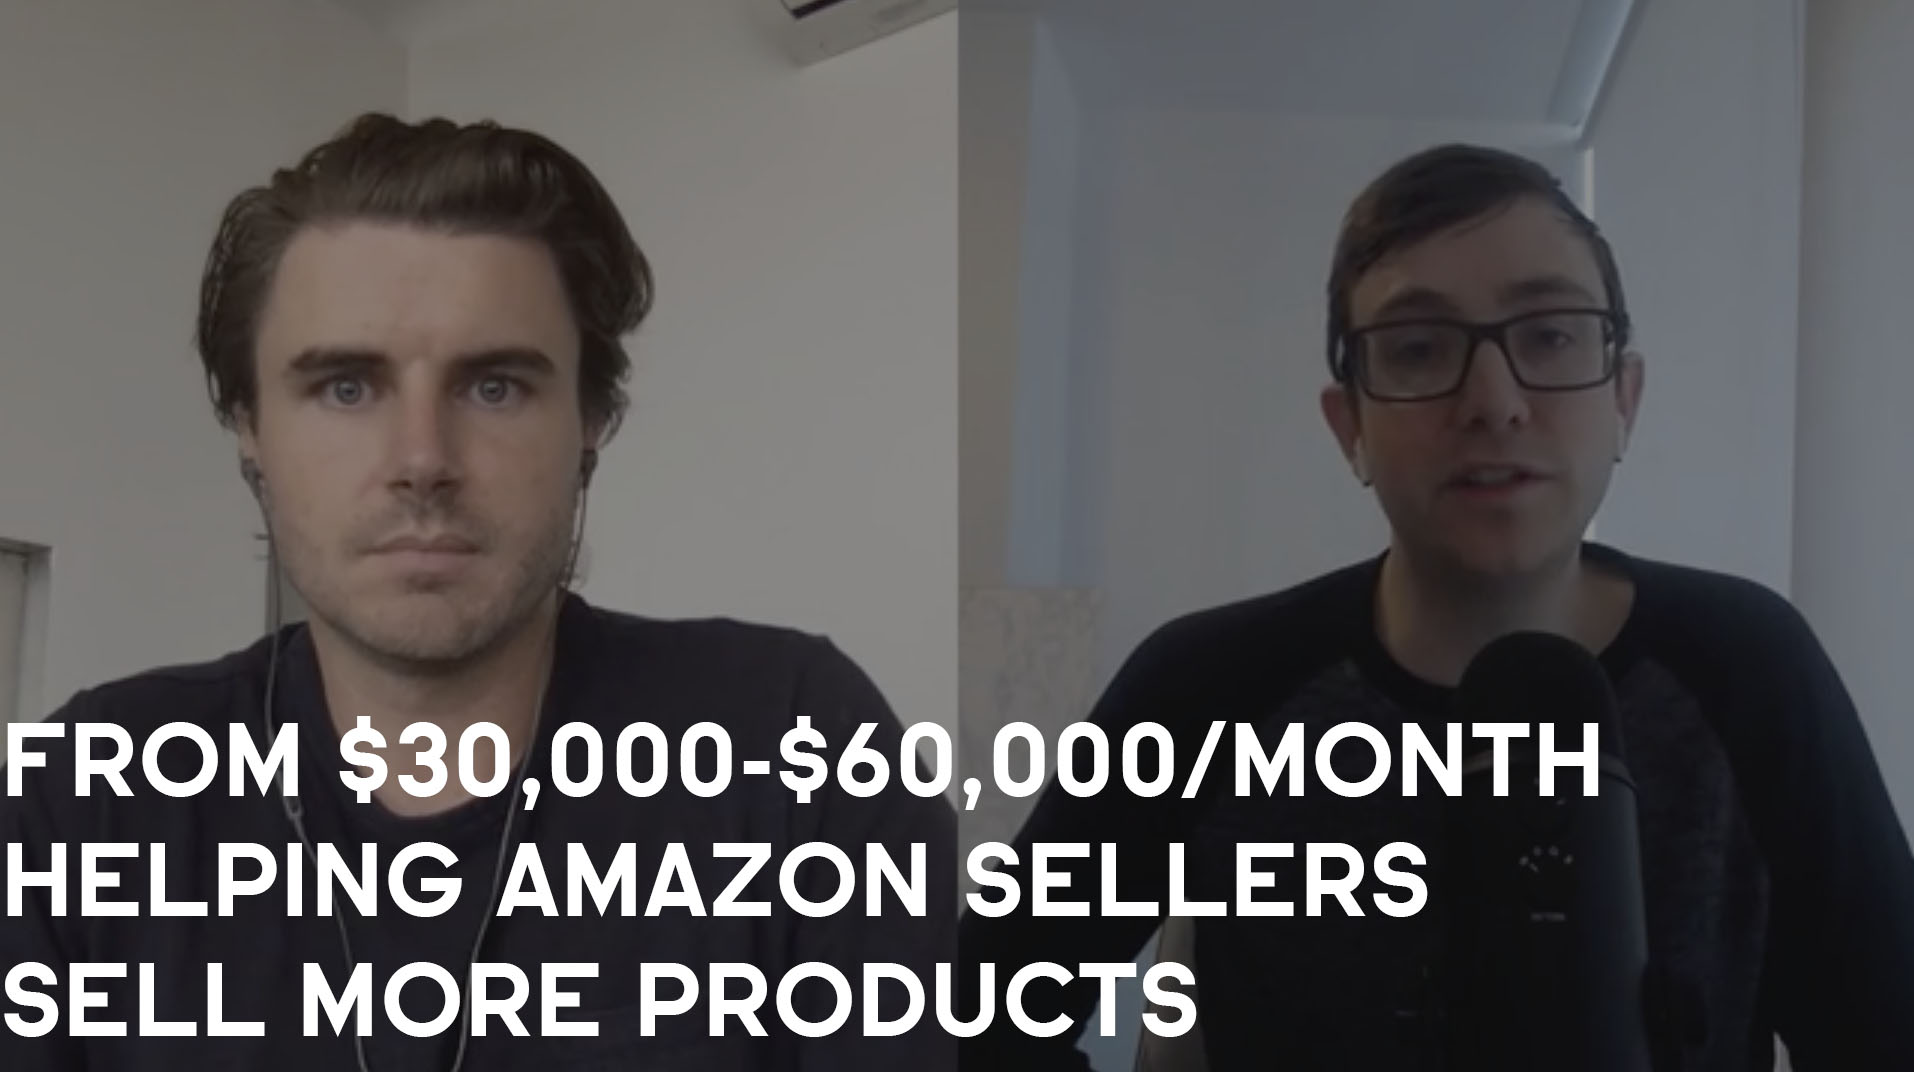 How Sean Went From $30,000/Month-$60,000/Month By Helping Amazon Sellers Sell More Products